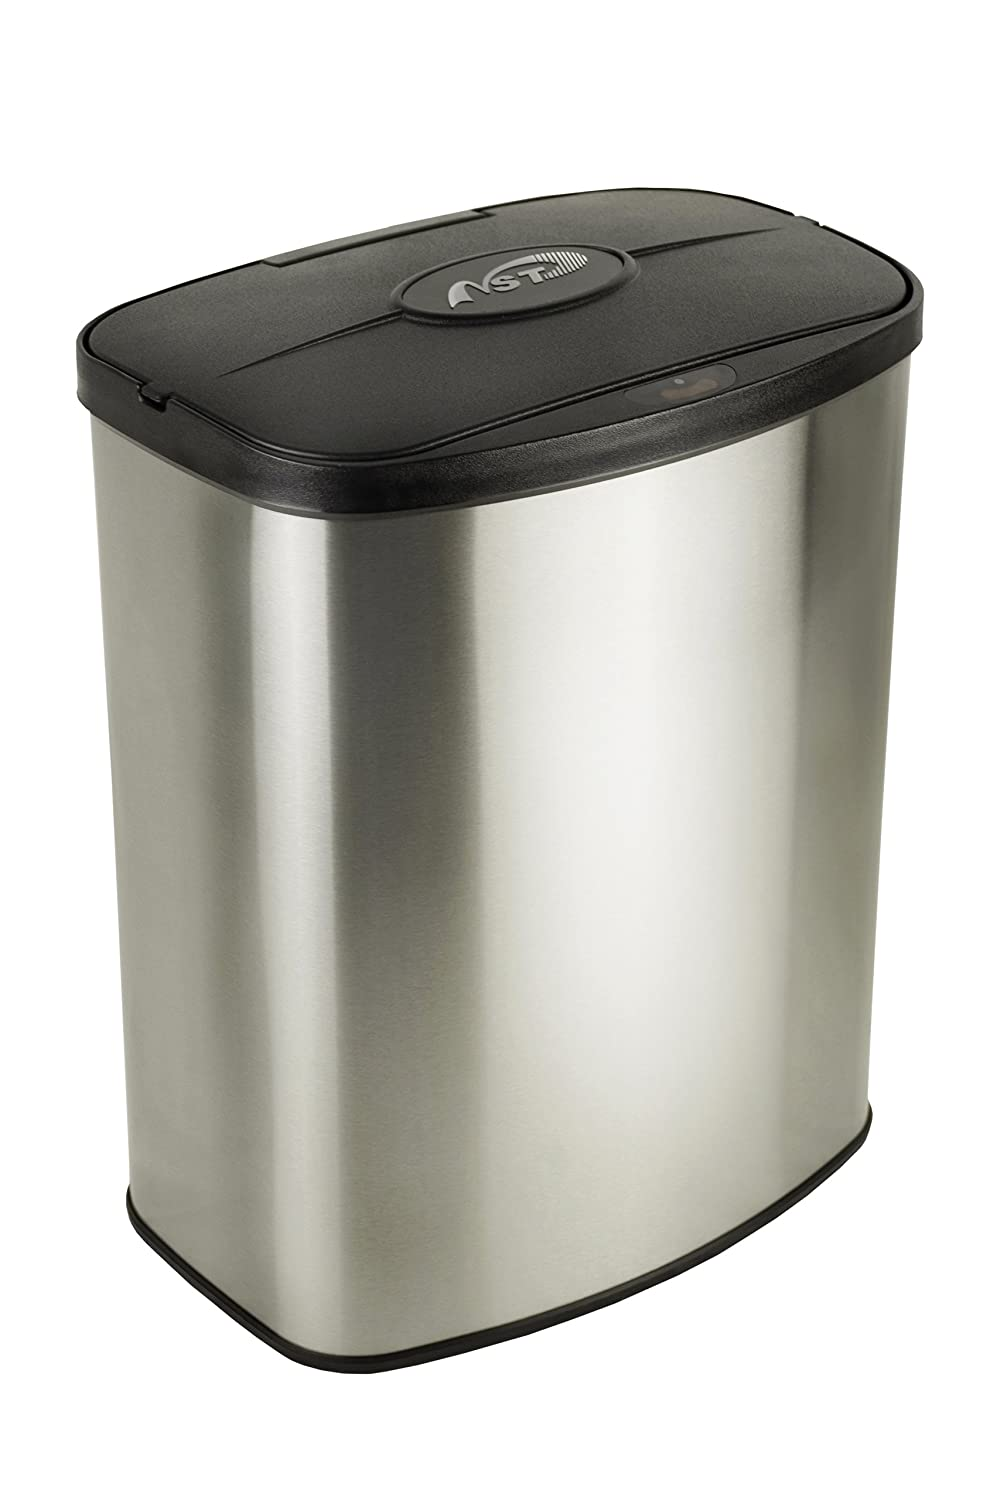 nine stars dzt 8 1 infrared touchless stainless steel trash can 2 1 gallon ebay. Black Bedroom Furniture Sets. Home Design Ideas